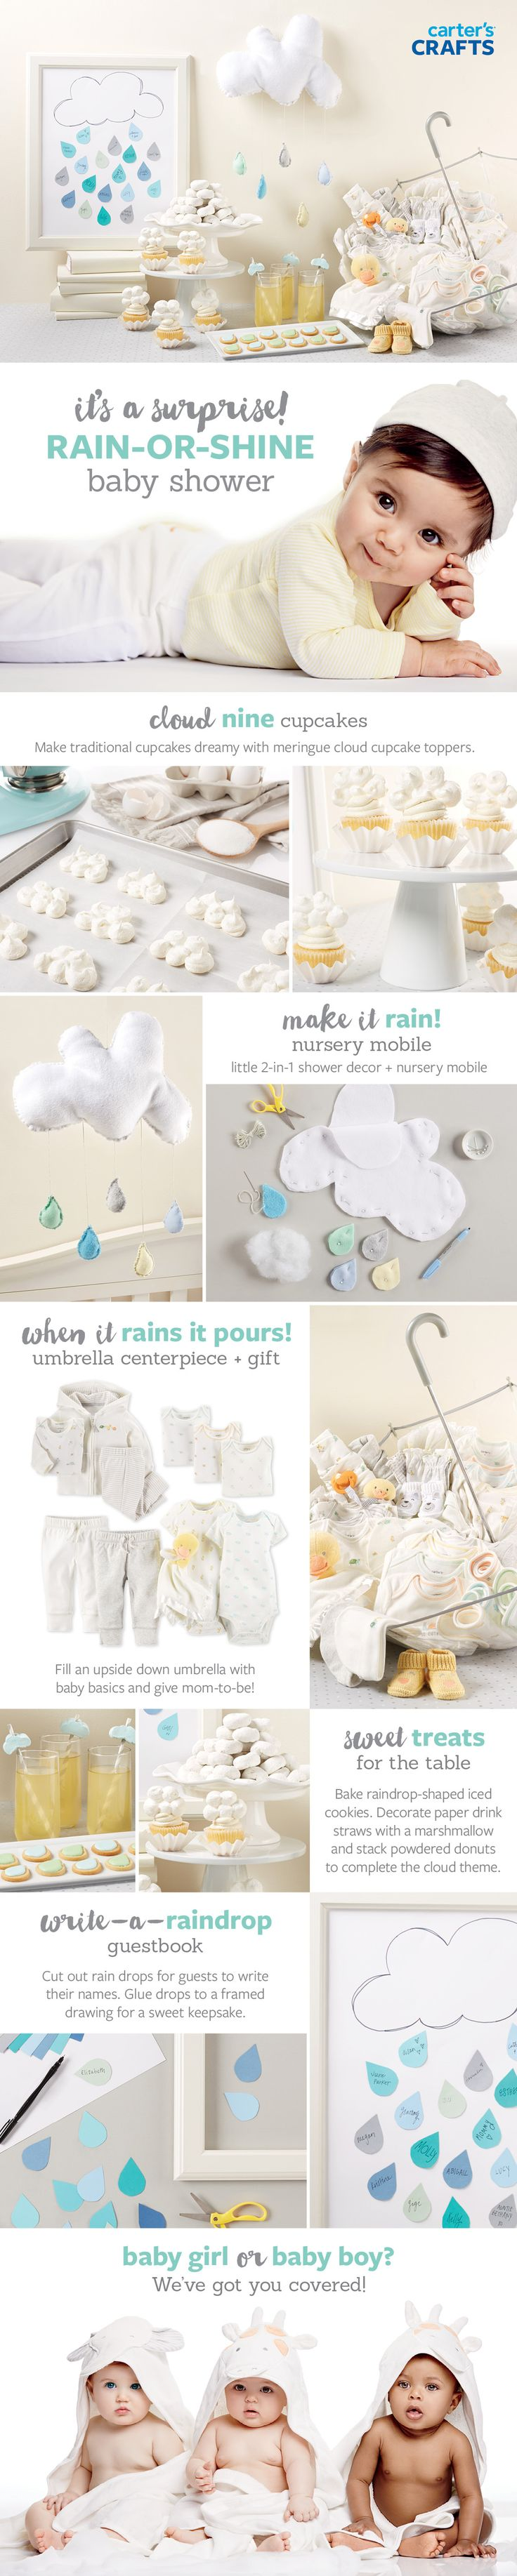 Rain-or-Shine Baby Shower - Gender Neural | Styling: Kristine Cholakian Cooke